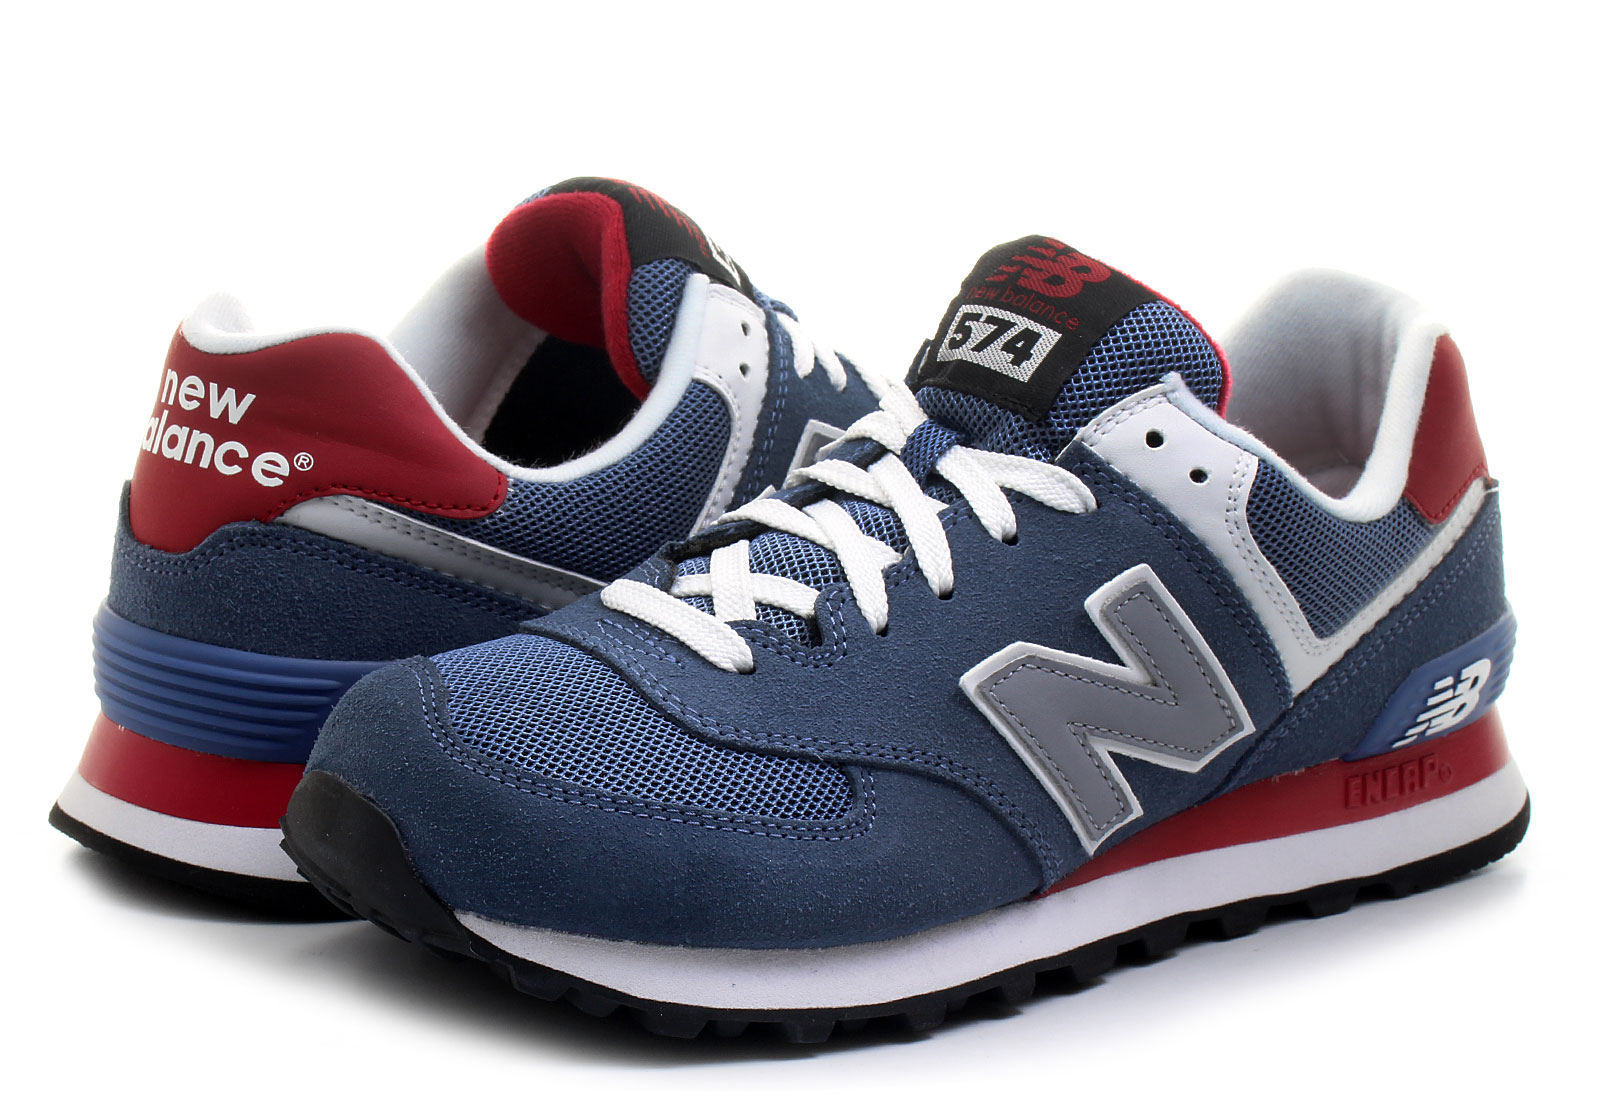 new balance shoes ml574 ml574cpj online shop for sneakers shoes and boots. Black Bedroom Furniture Sets. Home Design Ideas